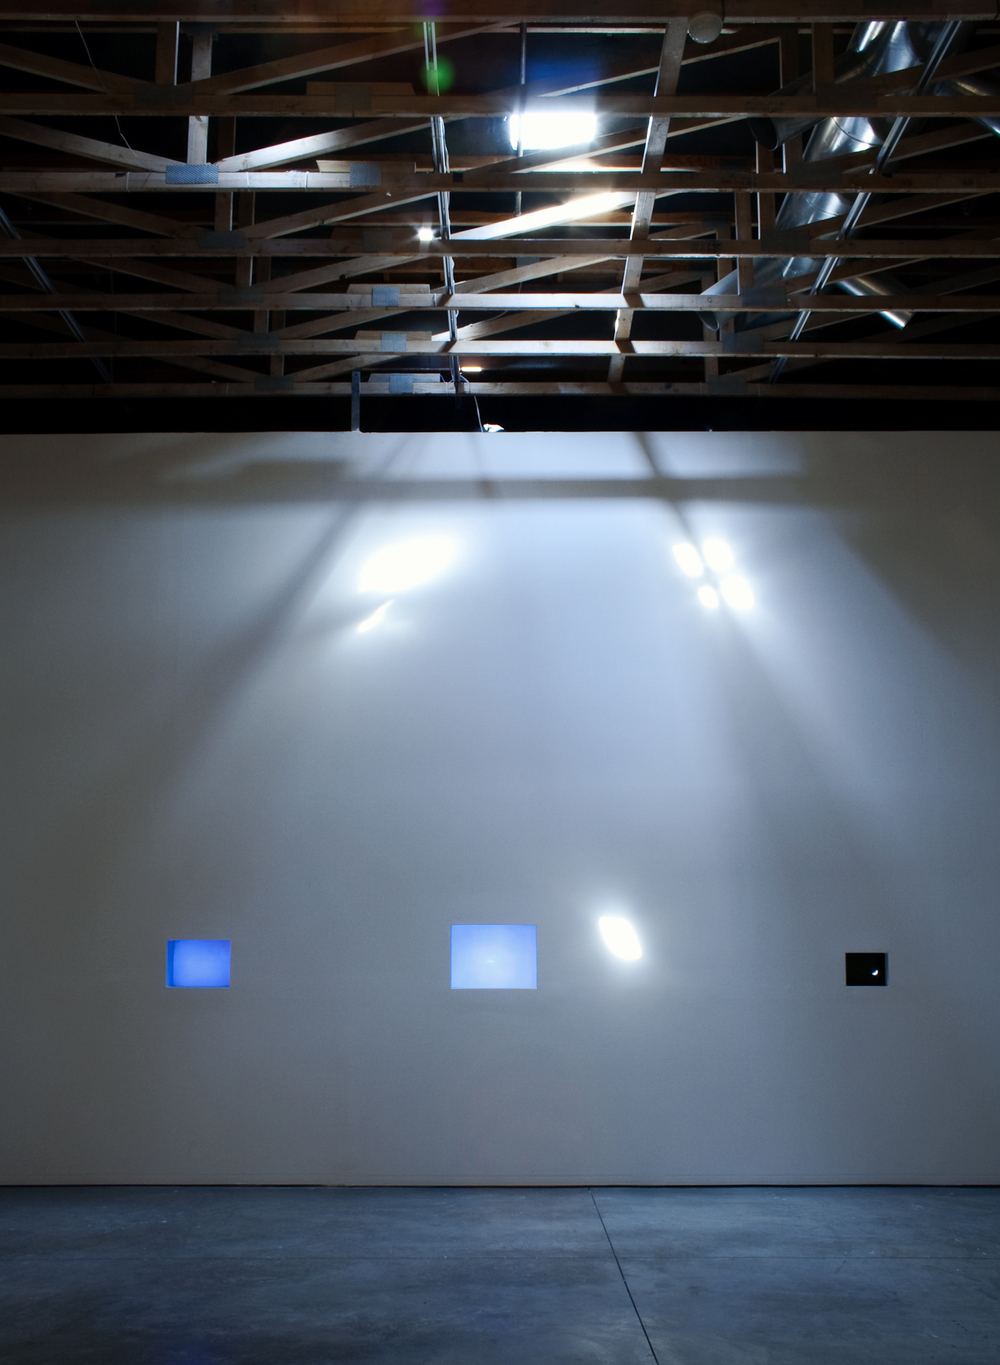 Installation view, Scottsdale Museum of Contemporary Art, 2009-2010.